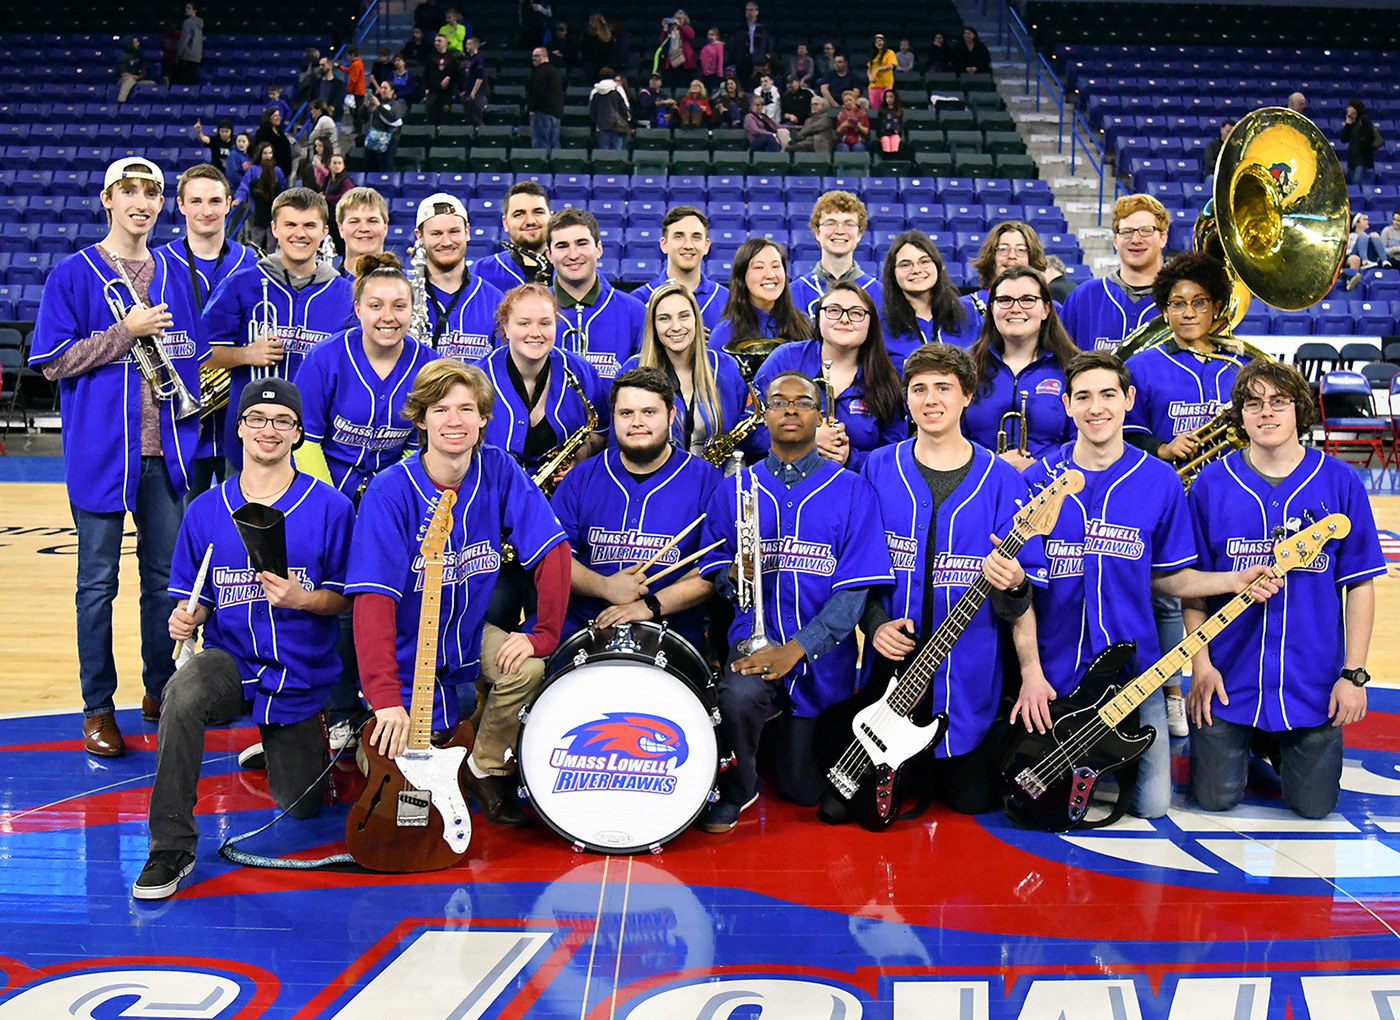 A group picture of the UMass Lowell Basketball Pep Band in 2017.